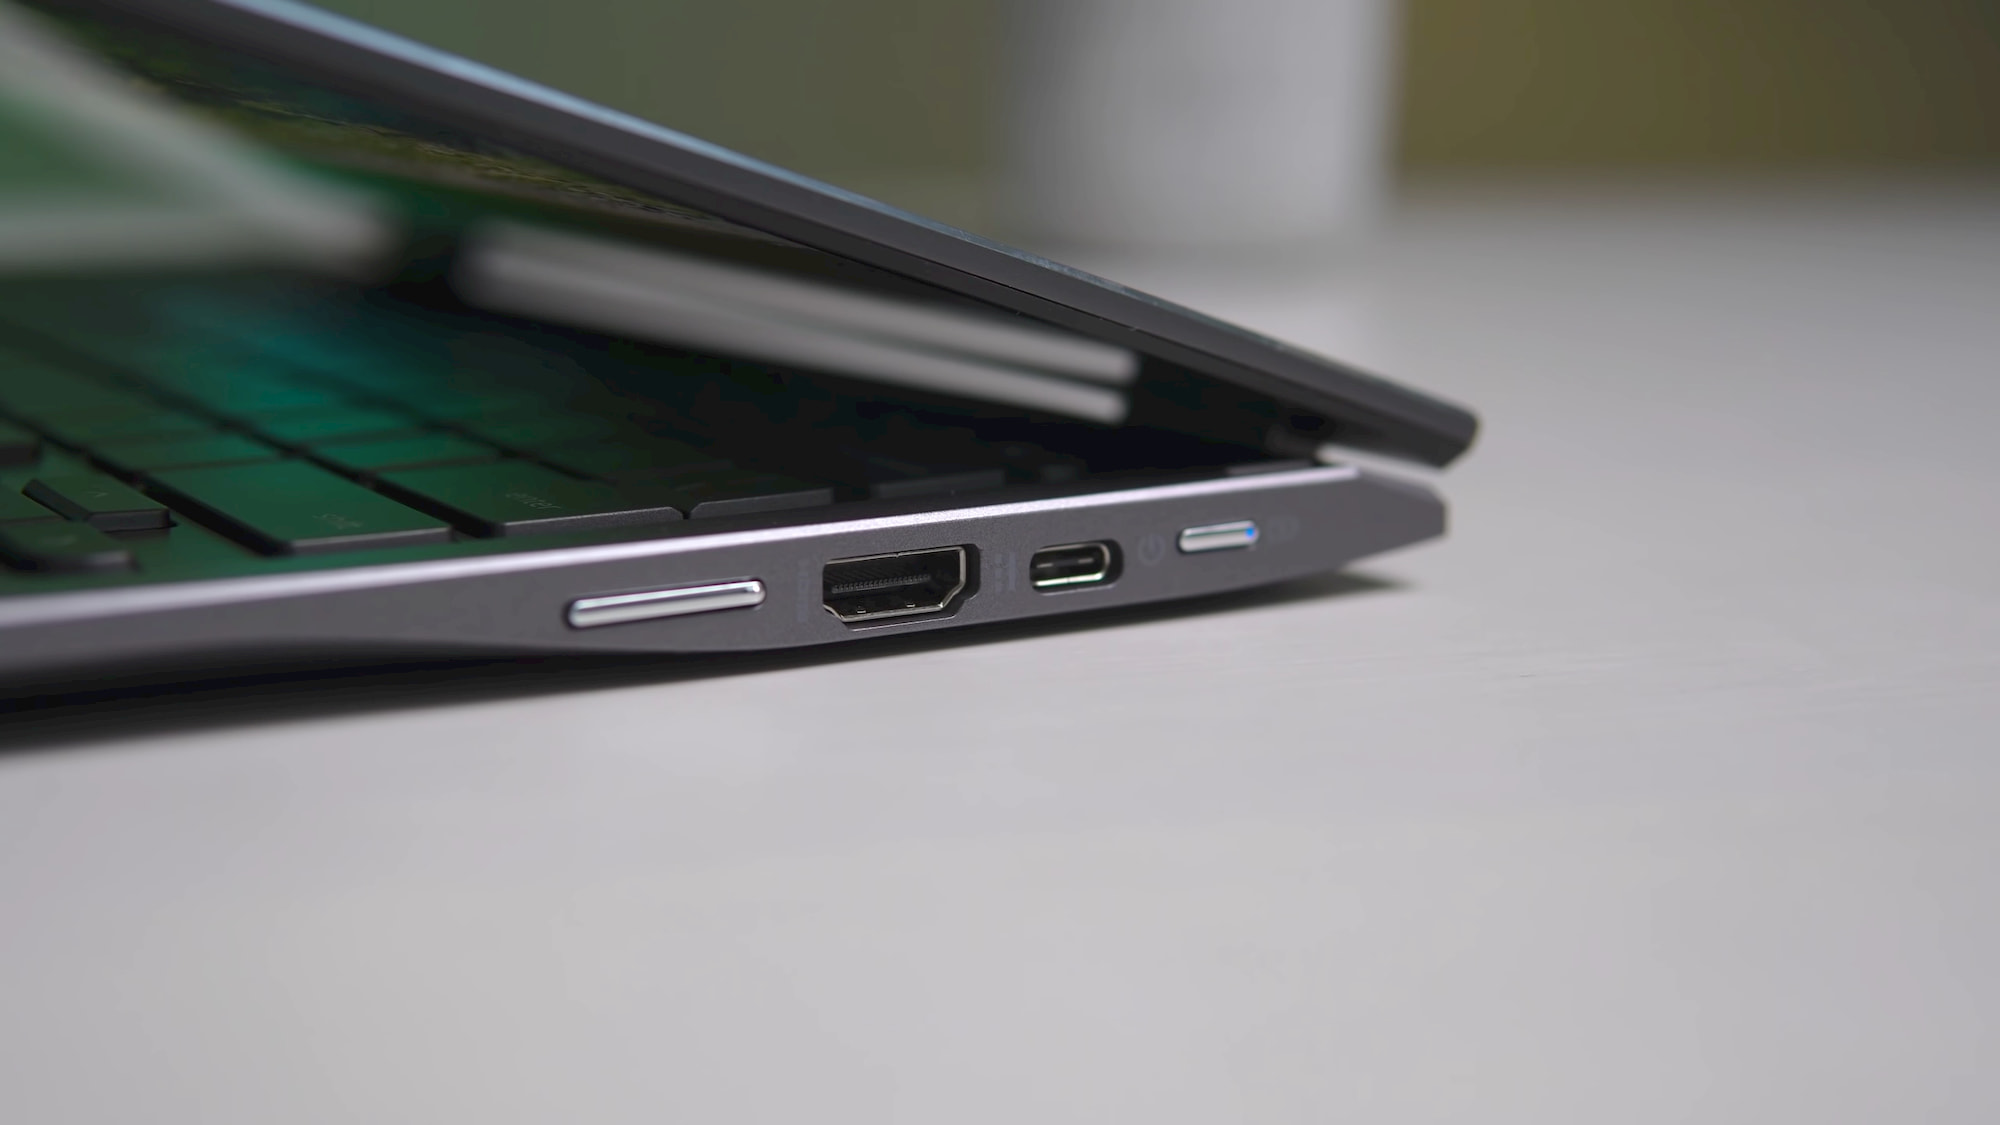 The one port 2020 taught me to fall in love with again on a Chromebook